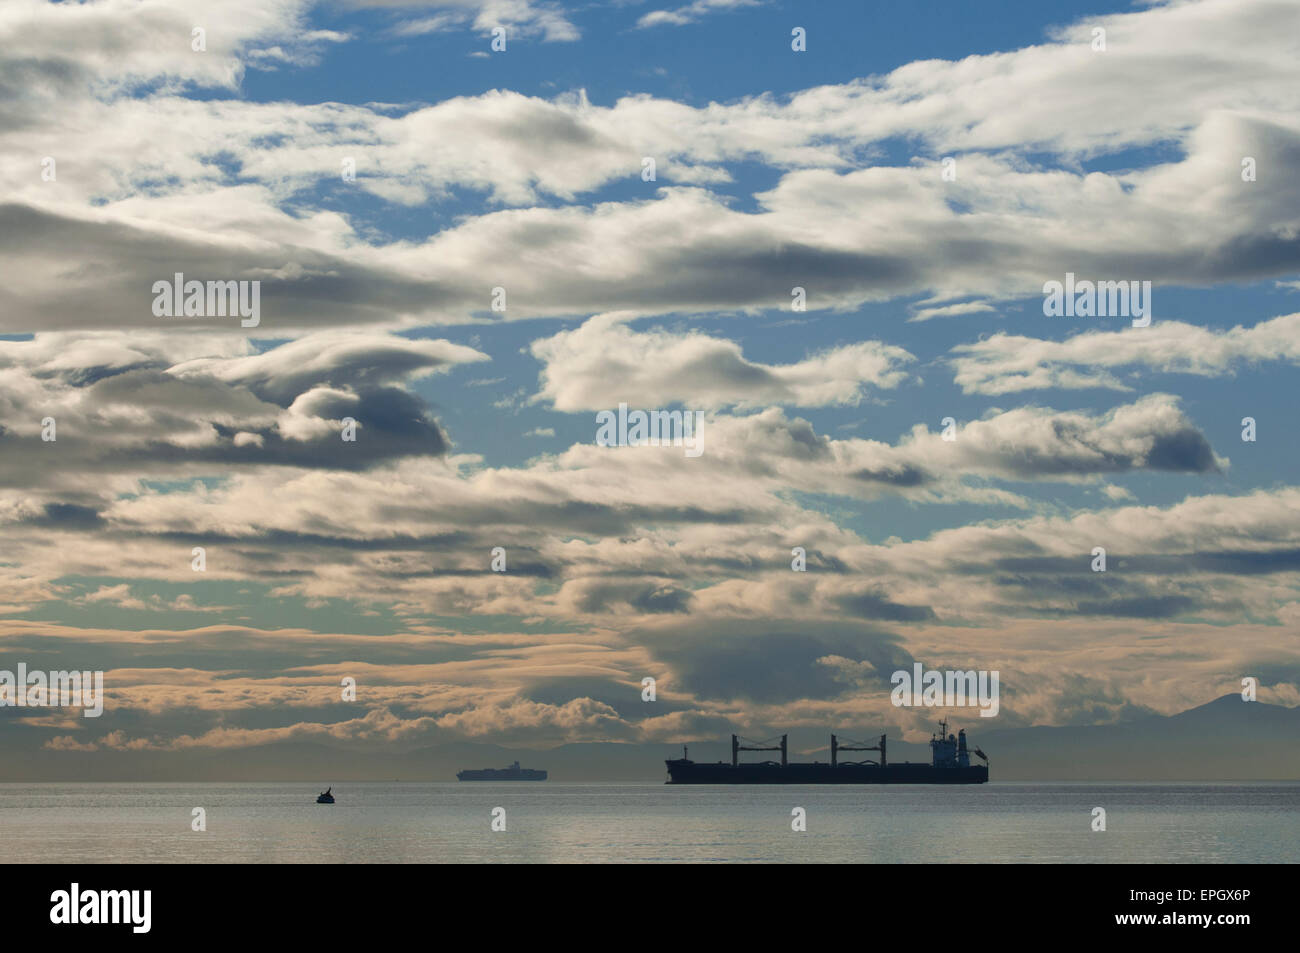 Freighters anchored off of Victoria BC, Canada, in Straits of Juan de Fuca, Salish Sea - Stock Image